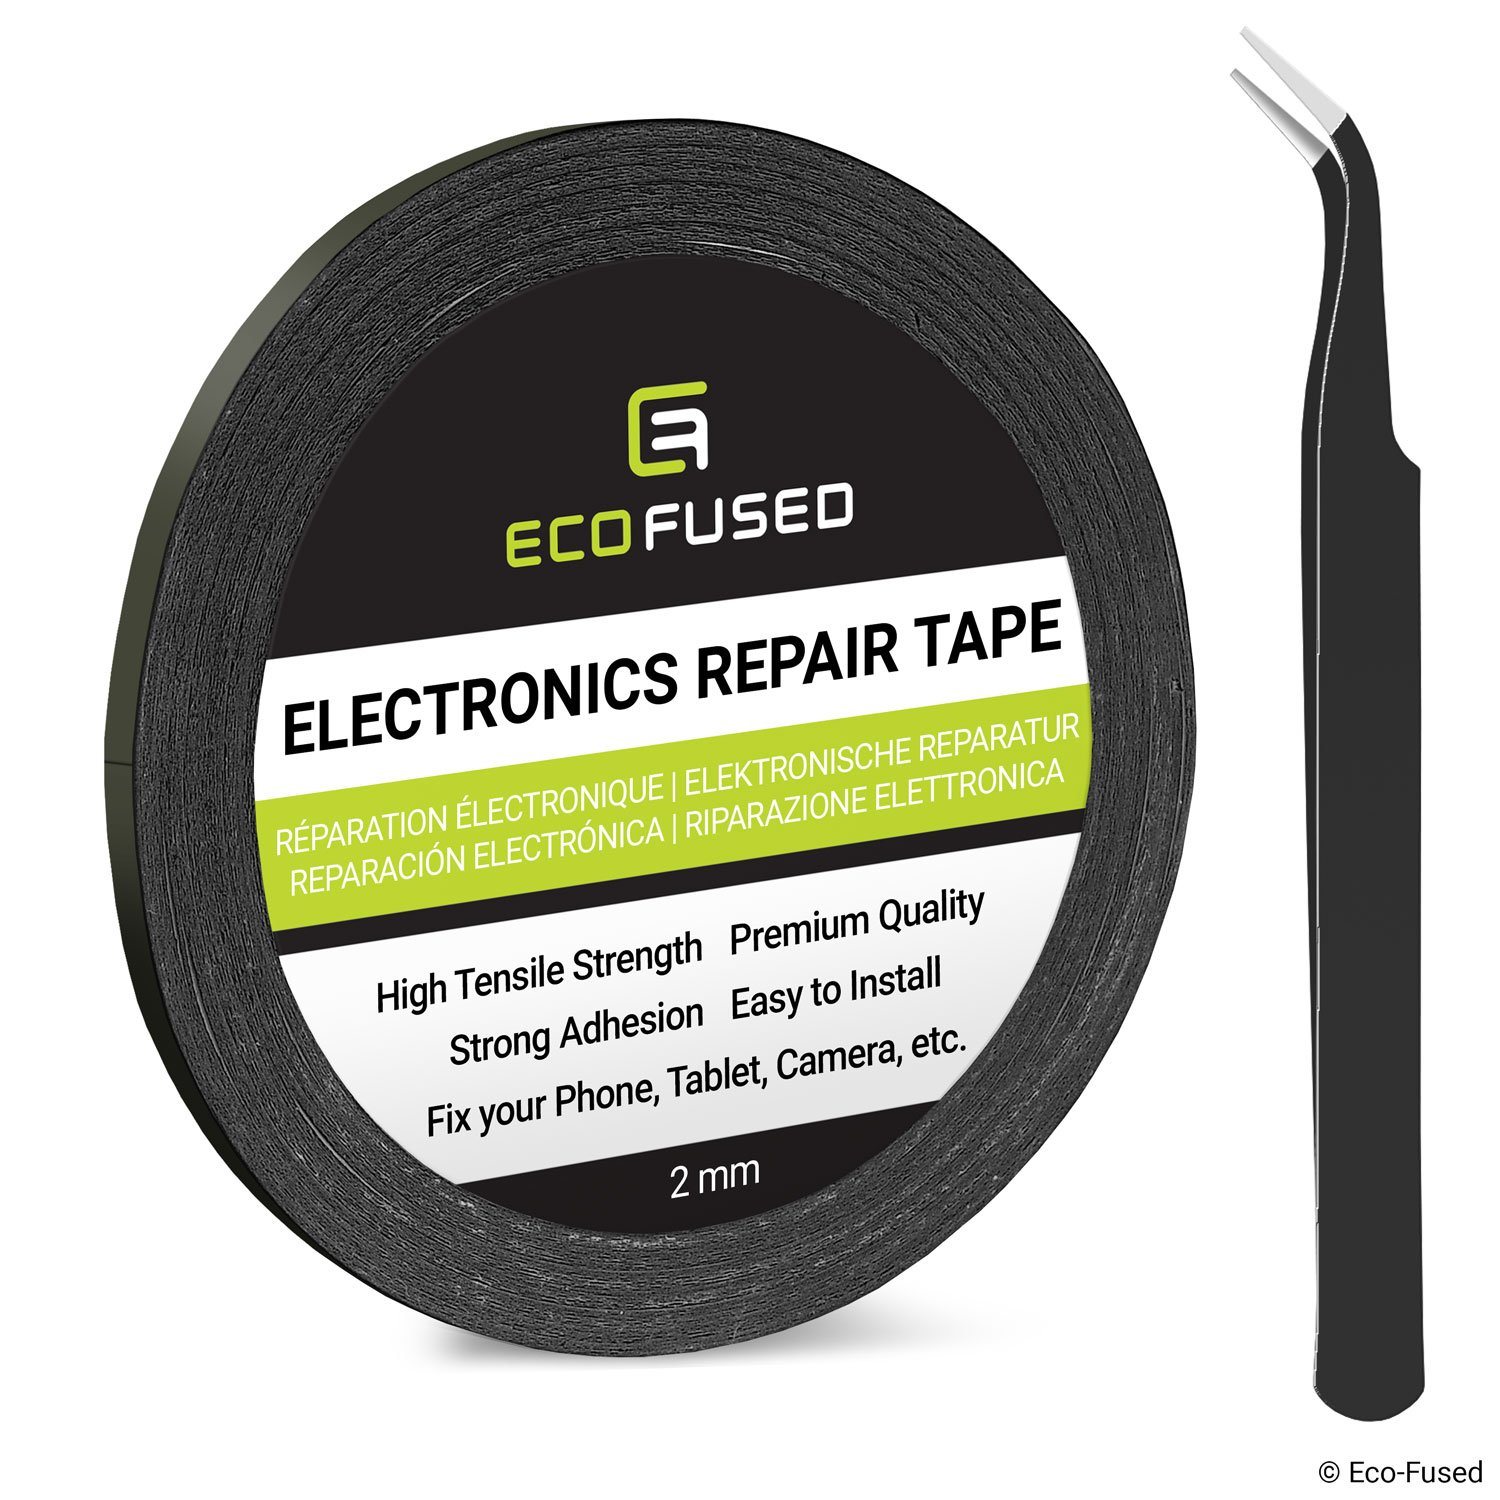 Eco-Fused Adhesive Sticker Tape for Use in Cell Phone Repair - 2mm Tape - also including 1 Pair of Tweezers/Eco-Fused Microfiber Cleaning Cloth (black)